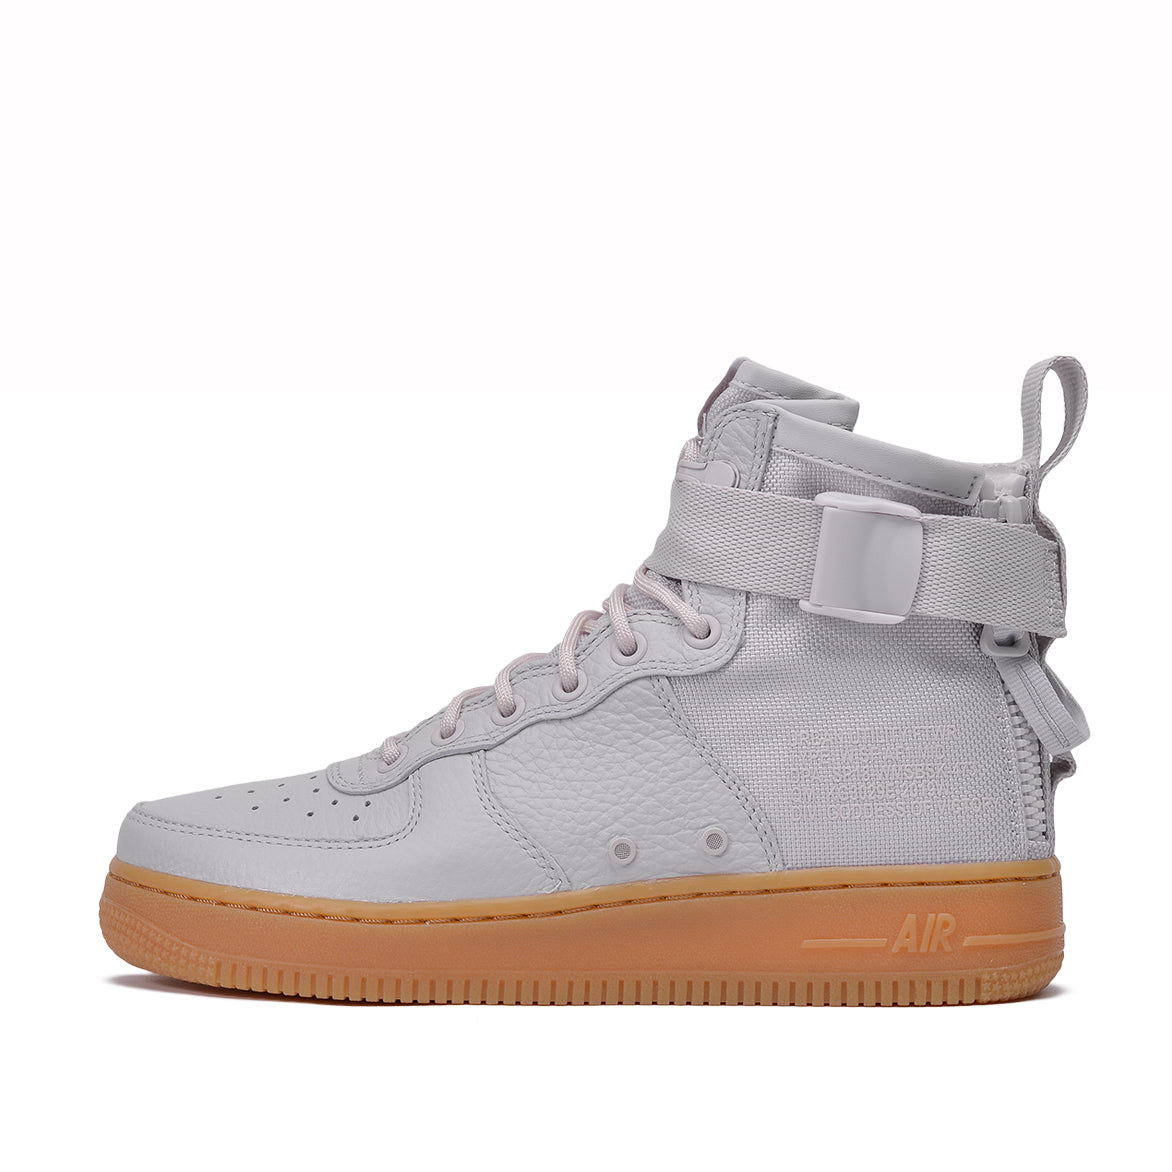 W SF AF1 MID (WMNS) - VAST GREY | City Blue